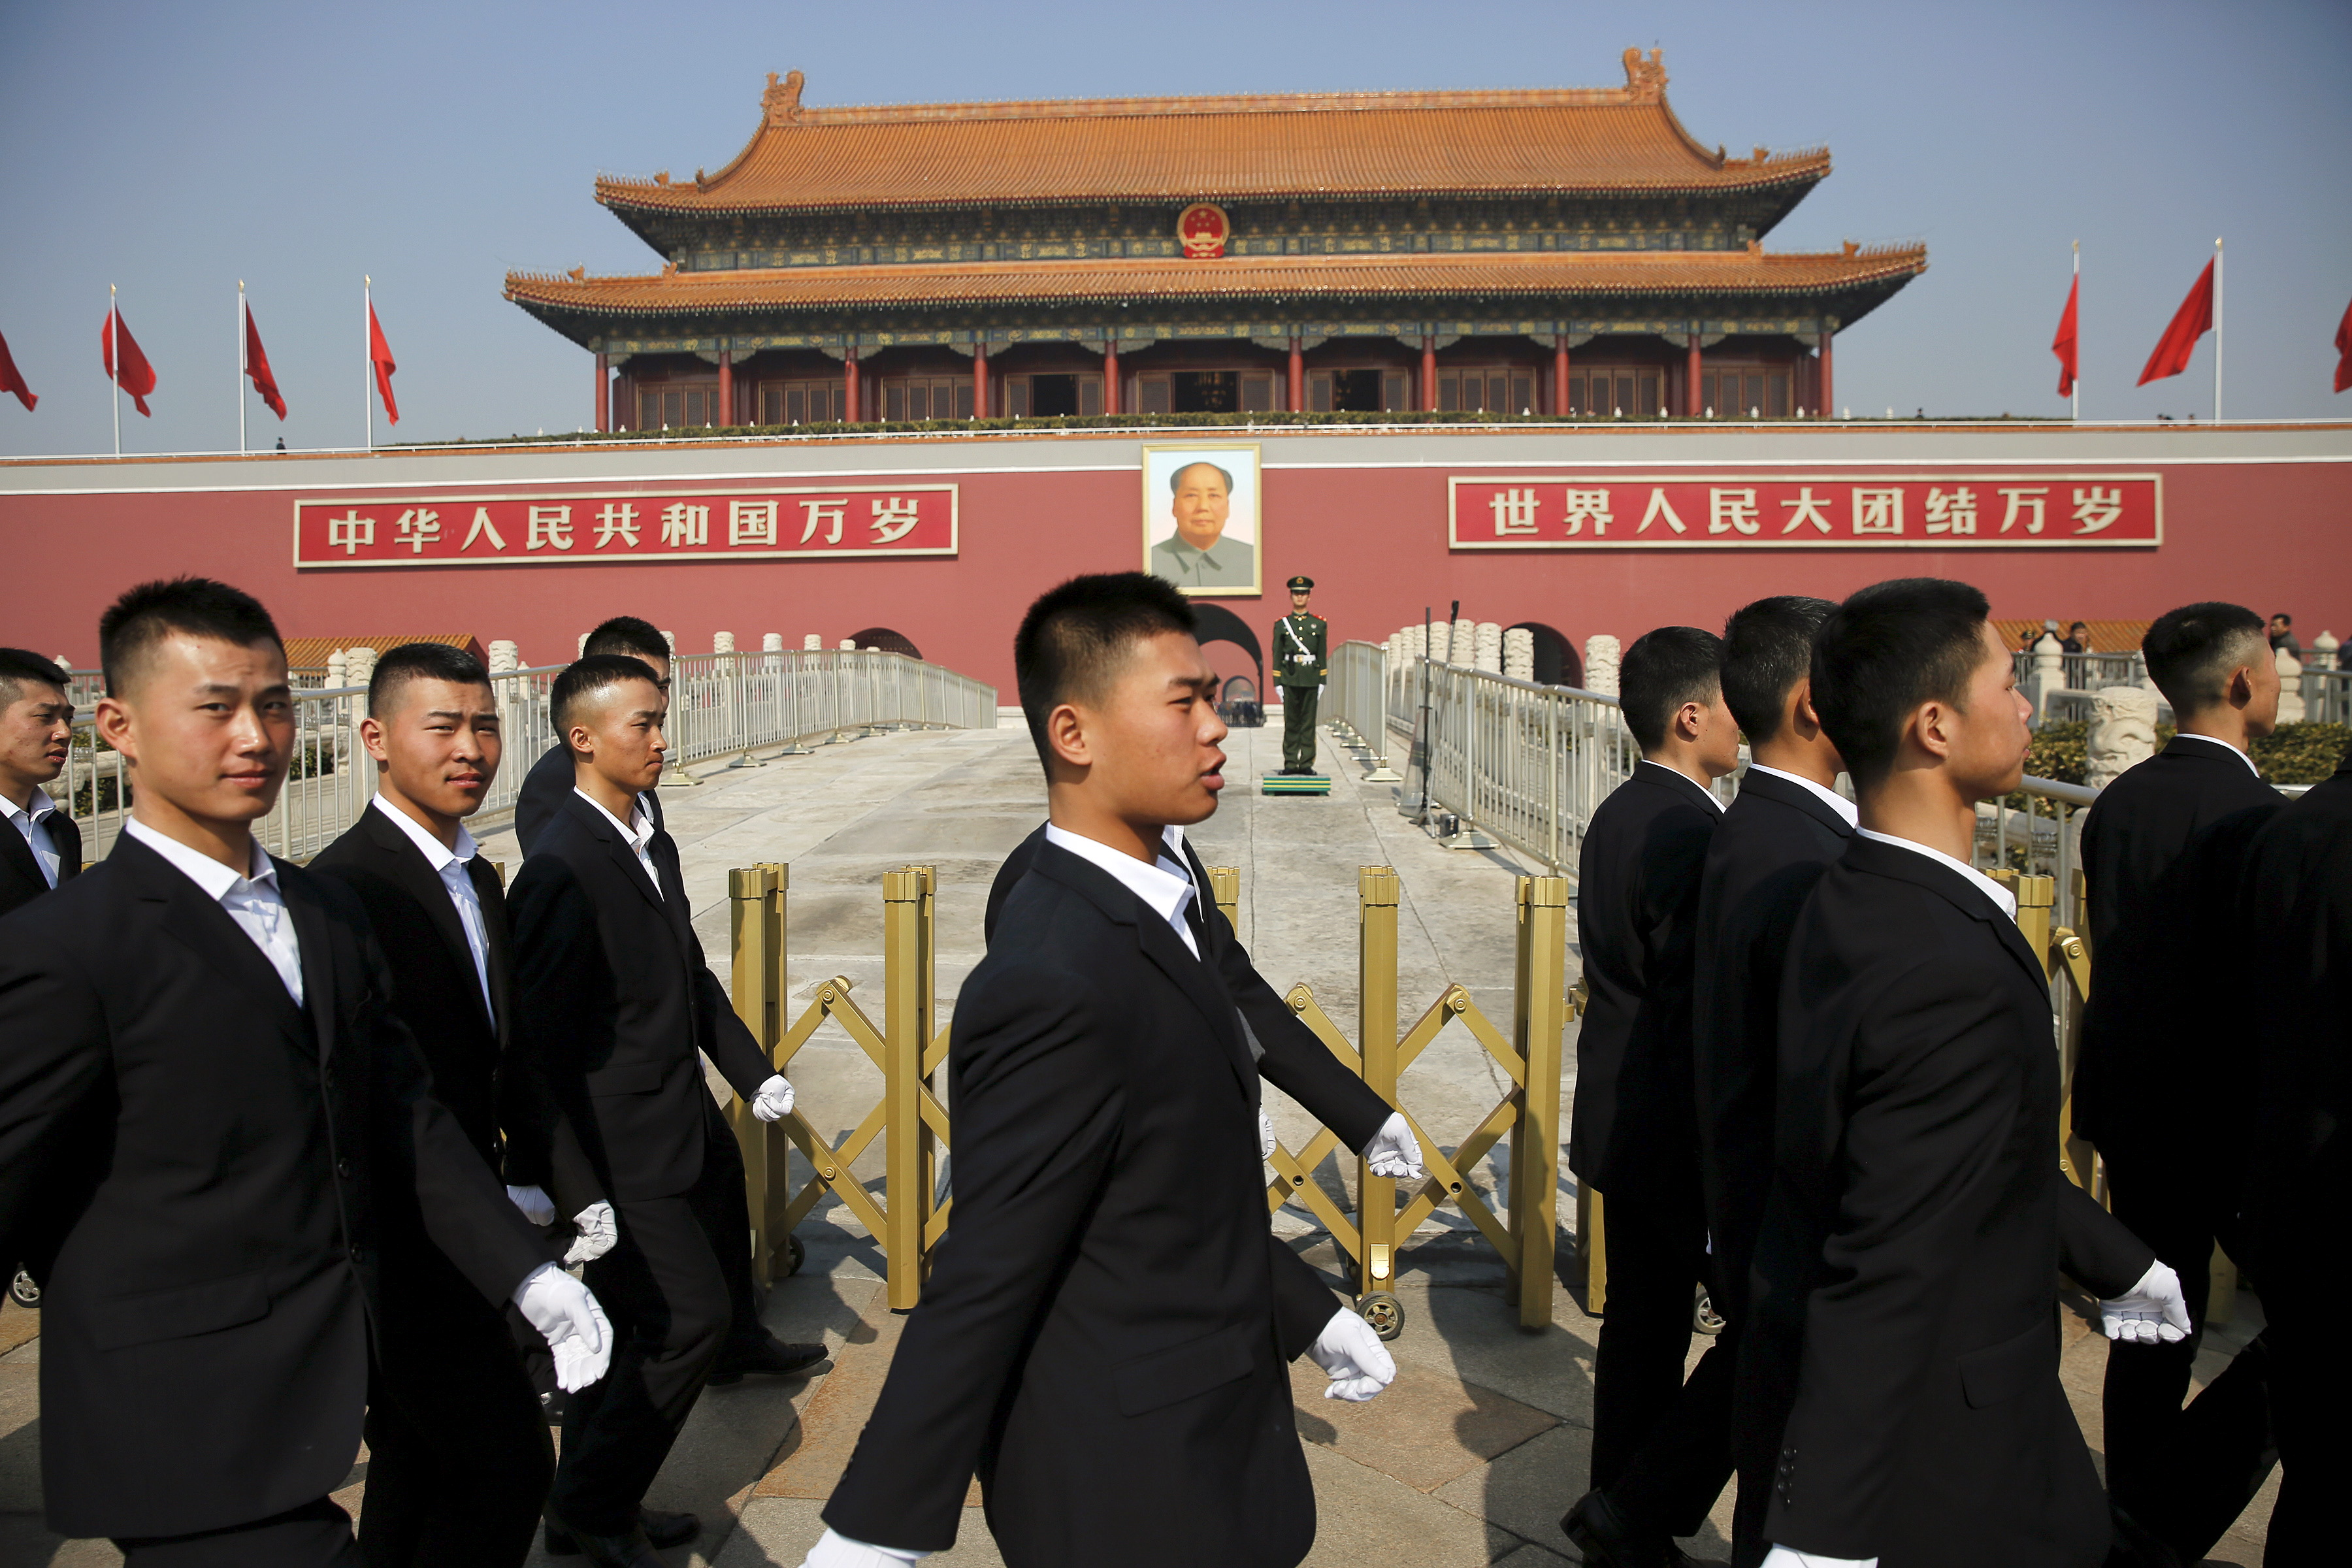 Security personnel march in front of Tiananmen Gate as the area near the Great Hall of the People prepares for upcoming annual sessions of the National People's Congress and Chinese People's Political Consultative Conference in Beijing on March 2, 2016